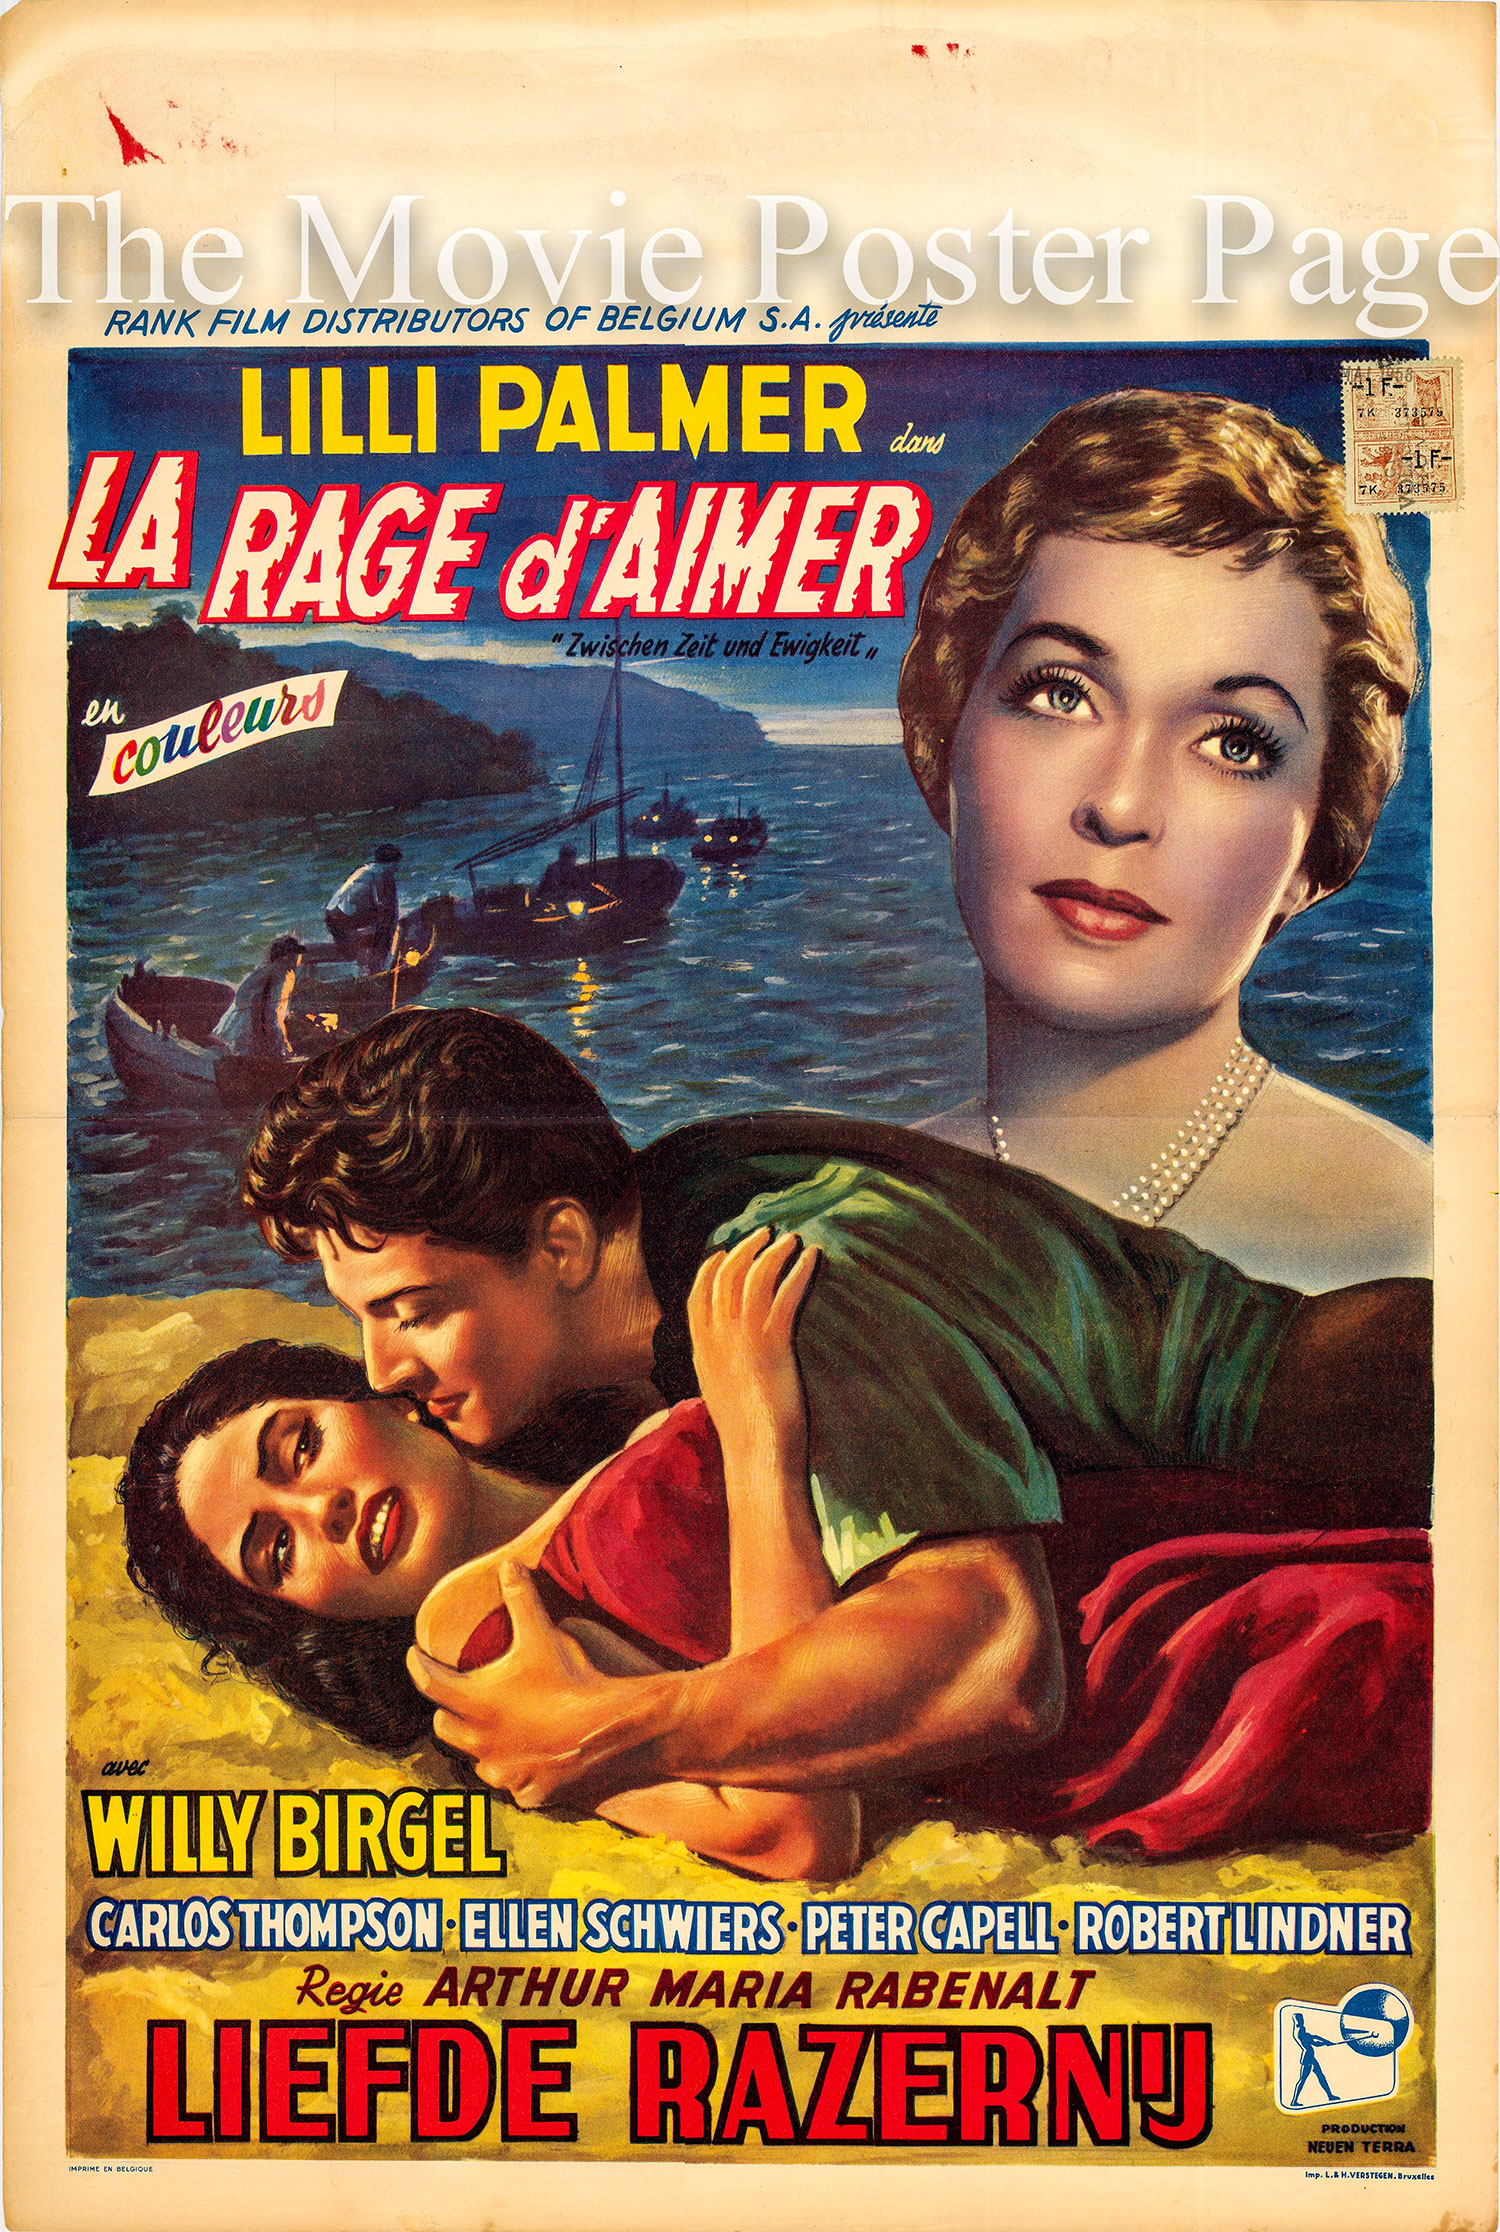 Pictured is a Beligian promotional poster for the 1956 ARthur Maria Rabenalt film Between Time and Eternity starring Lilli Palmer.